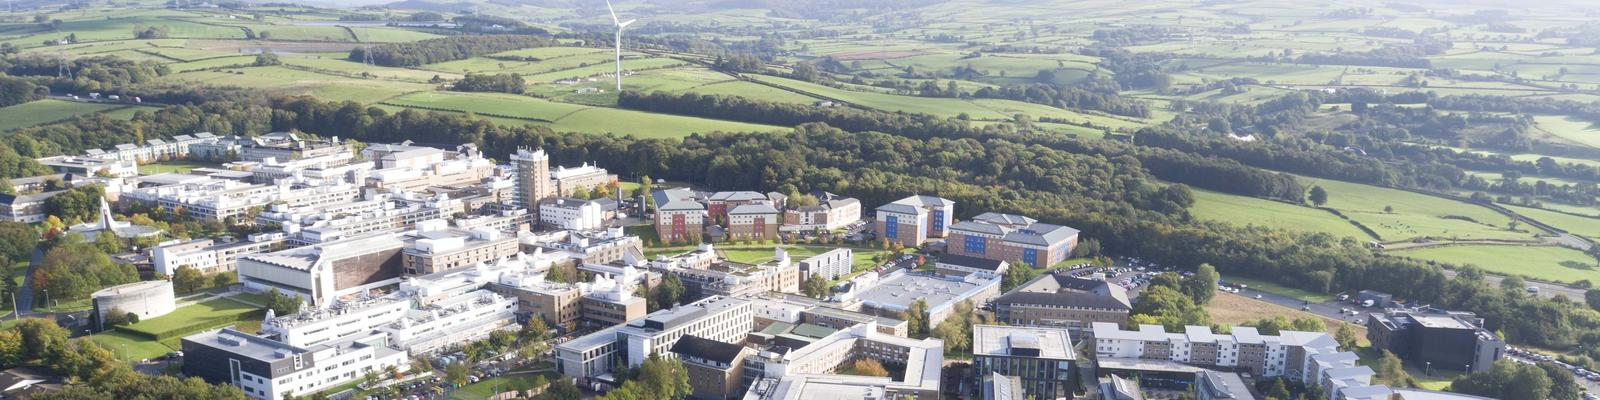 Lancaster University campus from the air